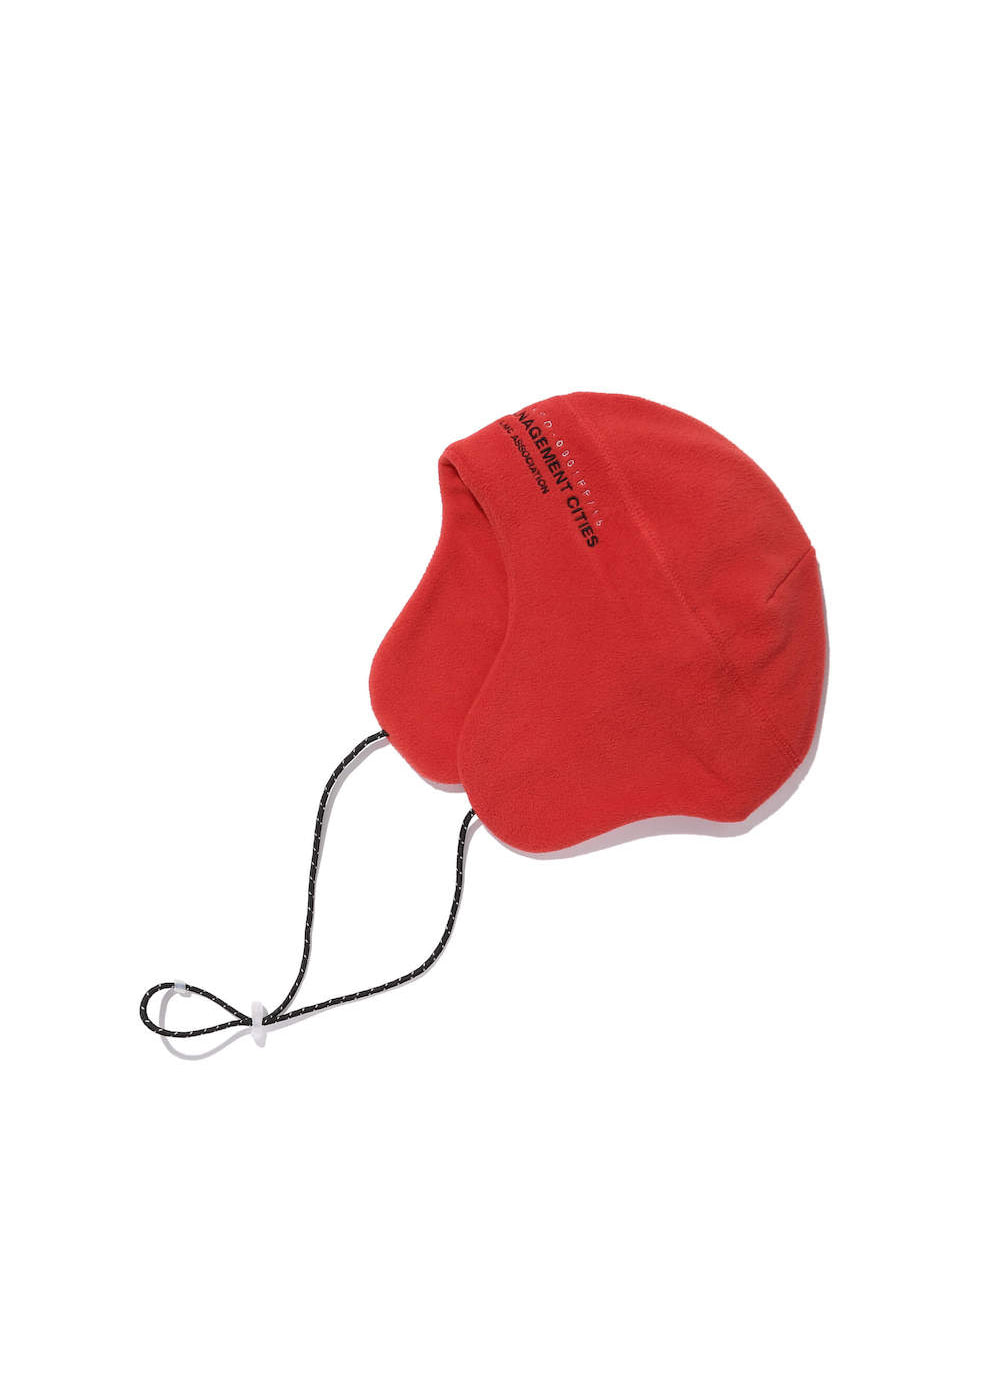 LMC FLEECE EARFLAP BEANIE red